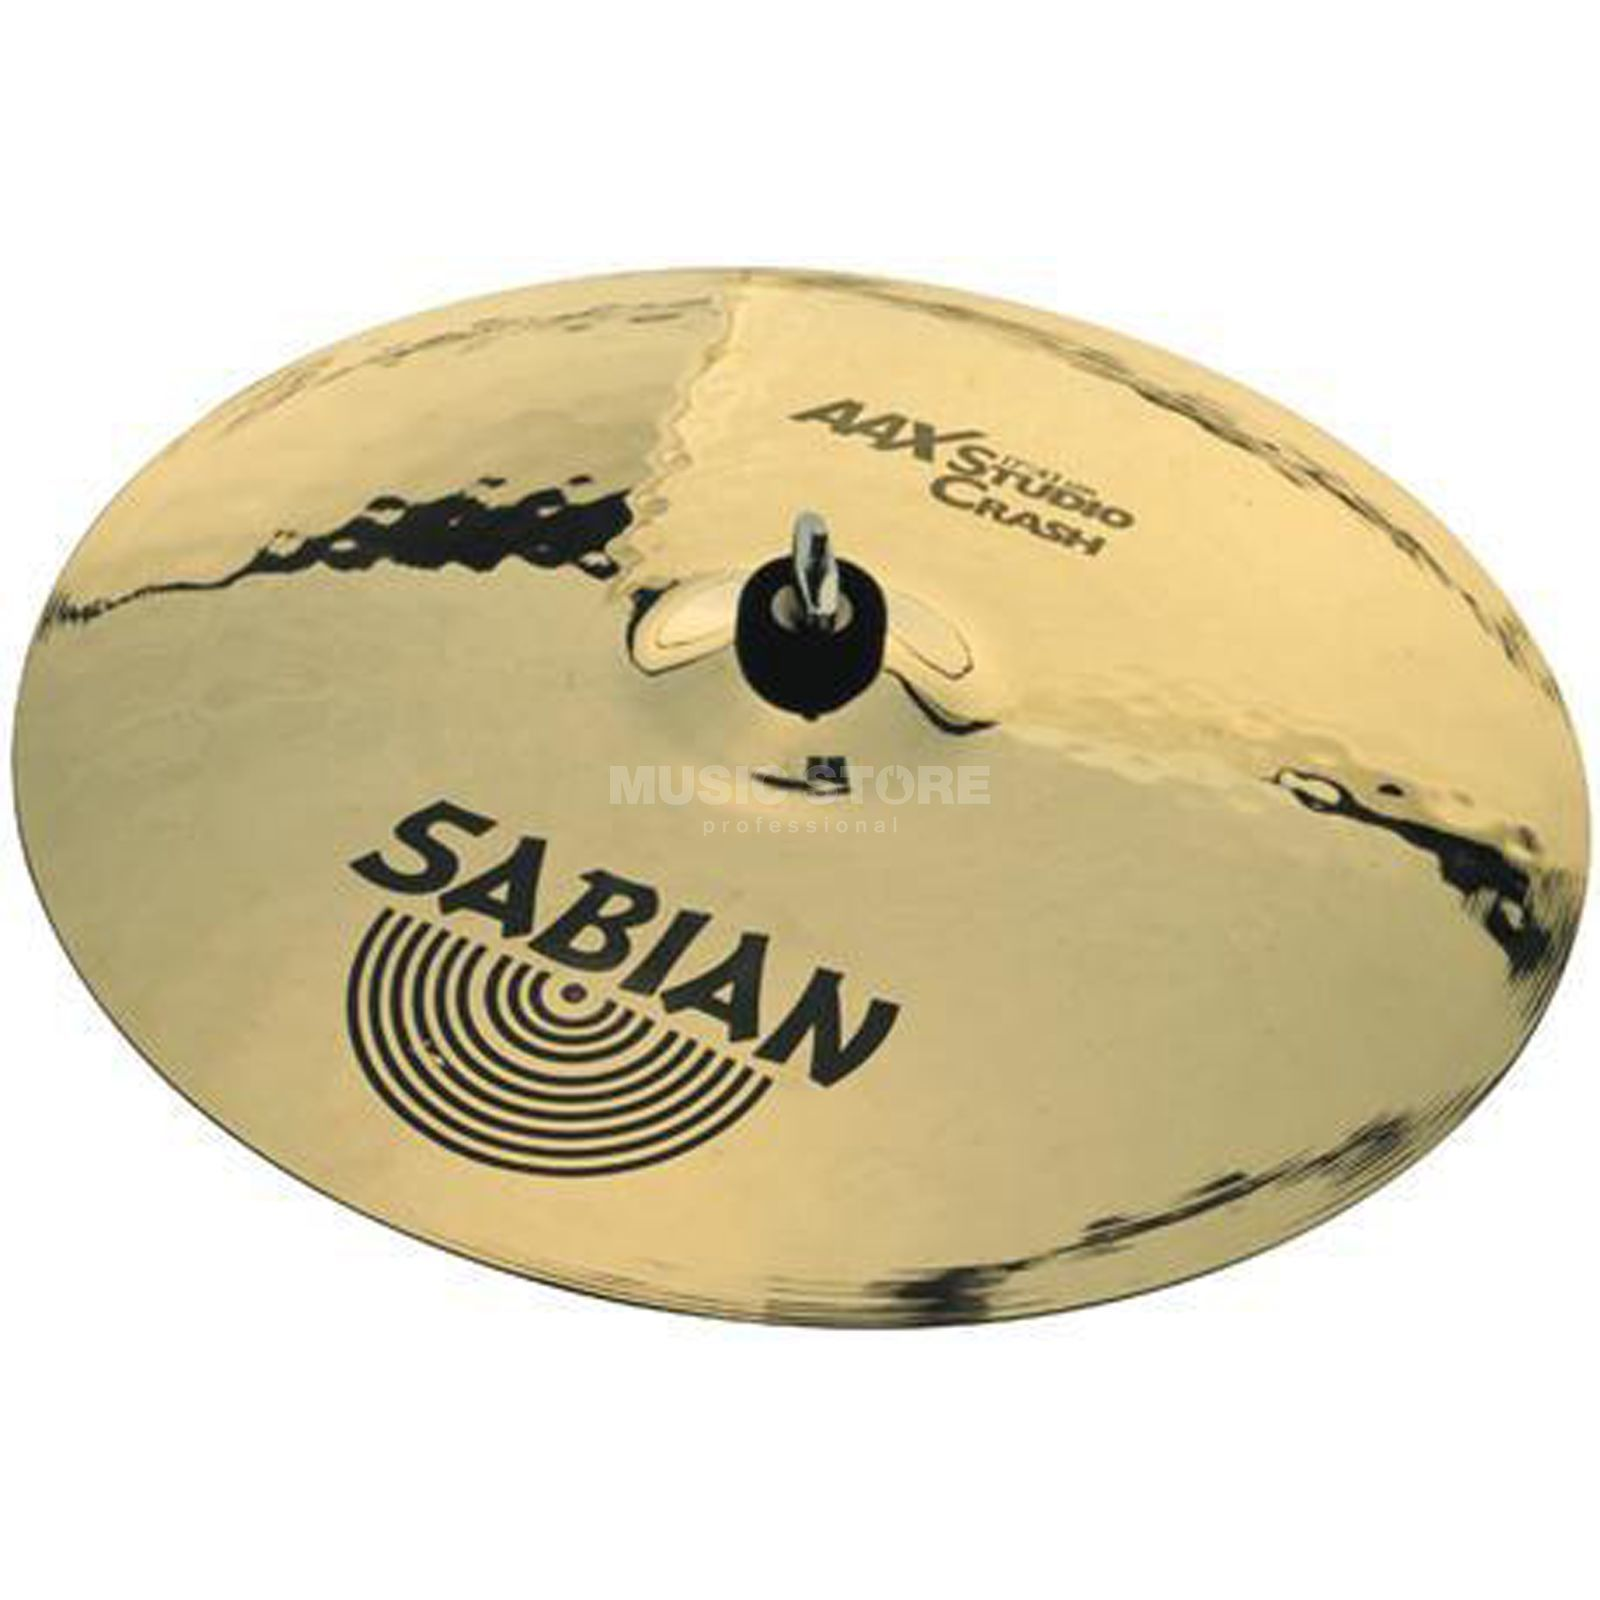 "Sabian AAX Studio Crash 18"", Brilliant Finish Product Image"